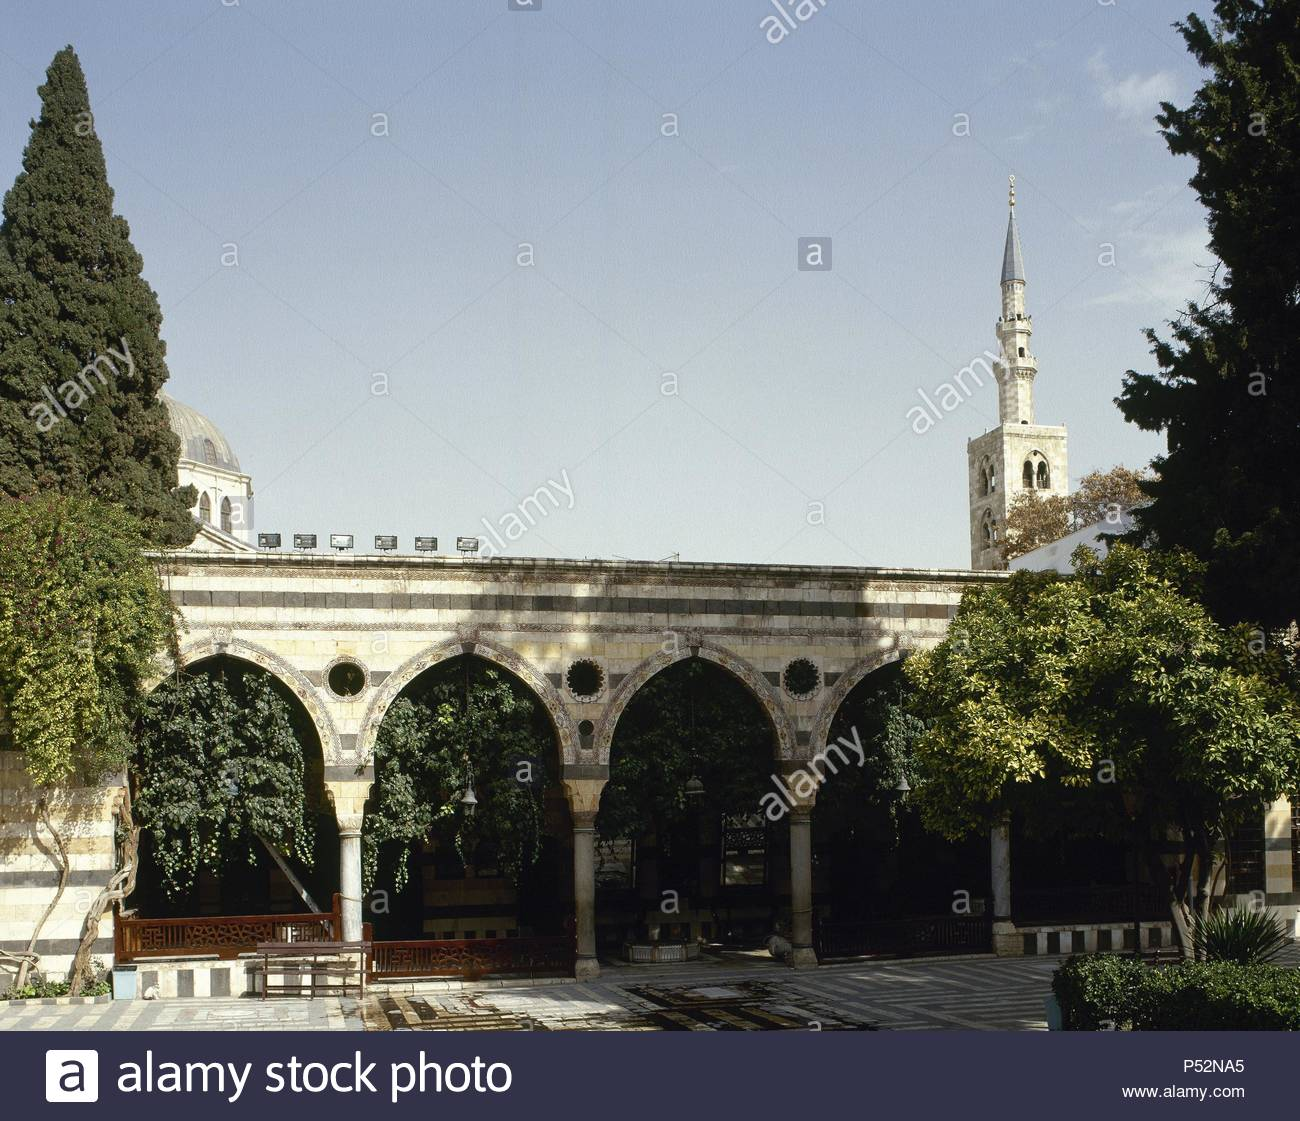 syrian arab republic damascus azem palace 1750 house of museum rh alamy com 1750 us dollars in pounds 1750 houses